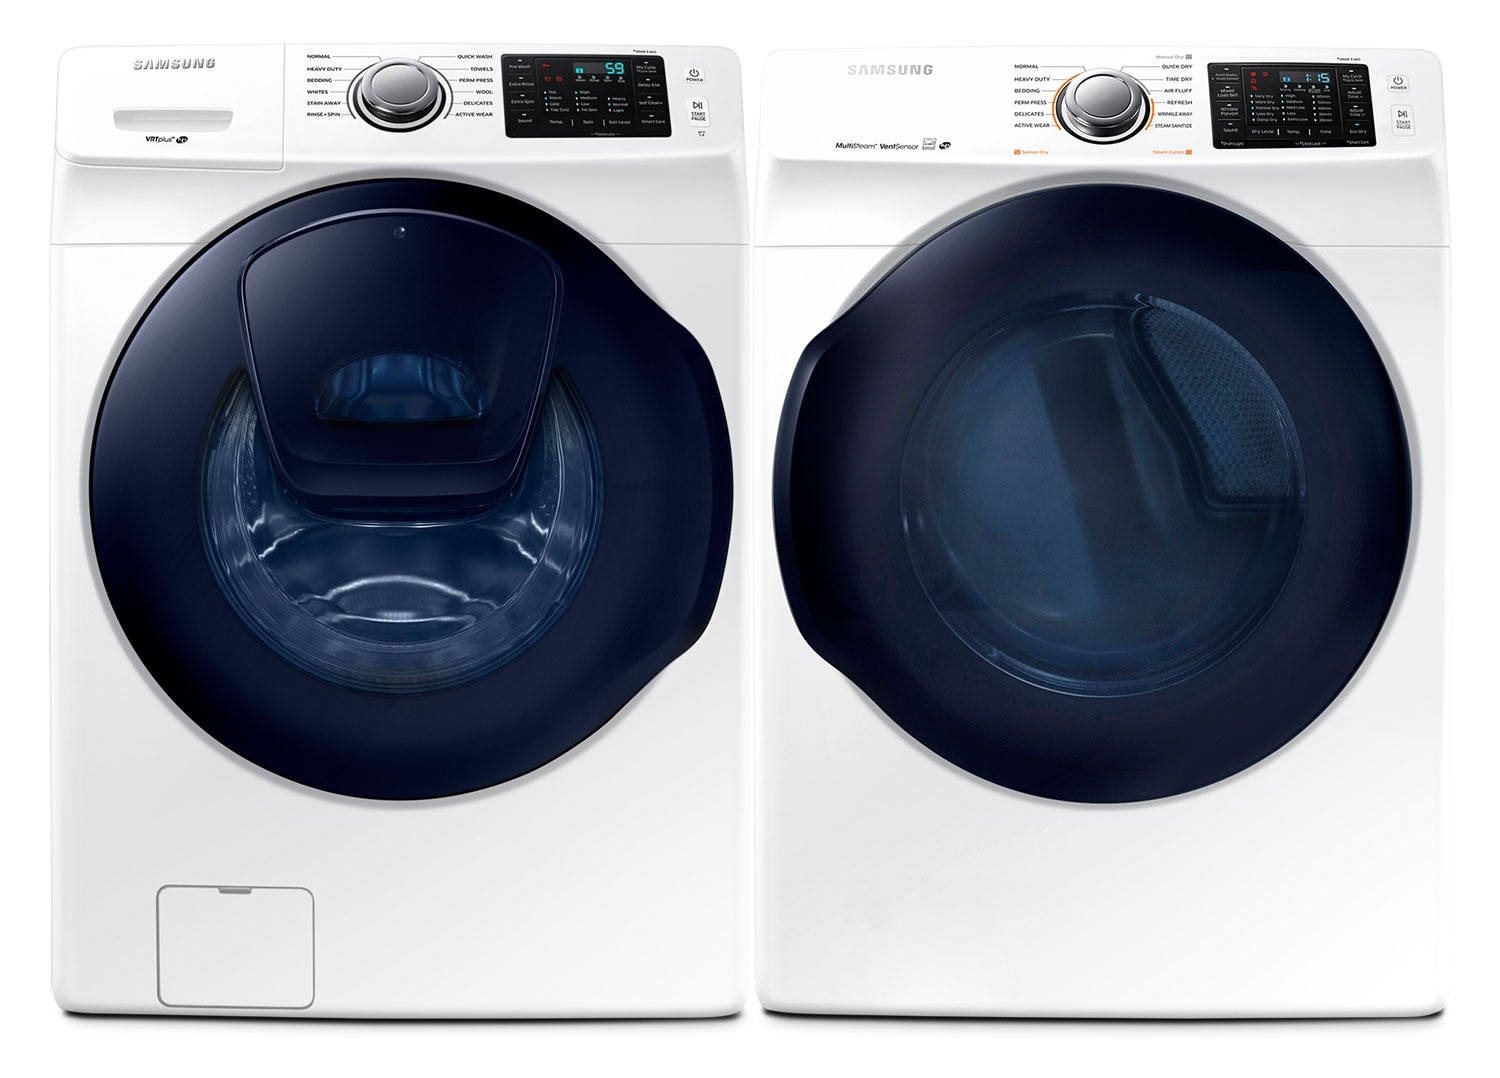 Washers and Dryers - Samsung 5.2 Cu. Ft. Front-Load Washer and 7.5 Cu. Ft. Electric Dryer – White